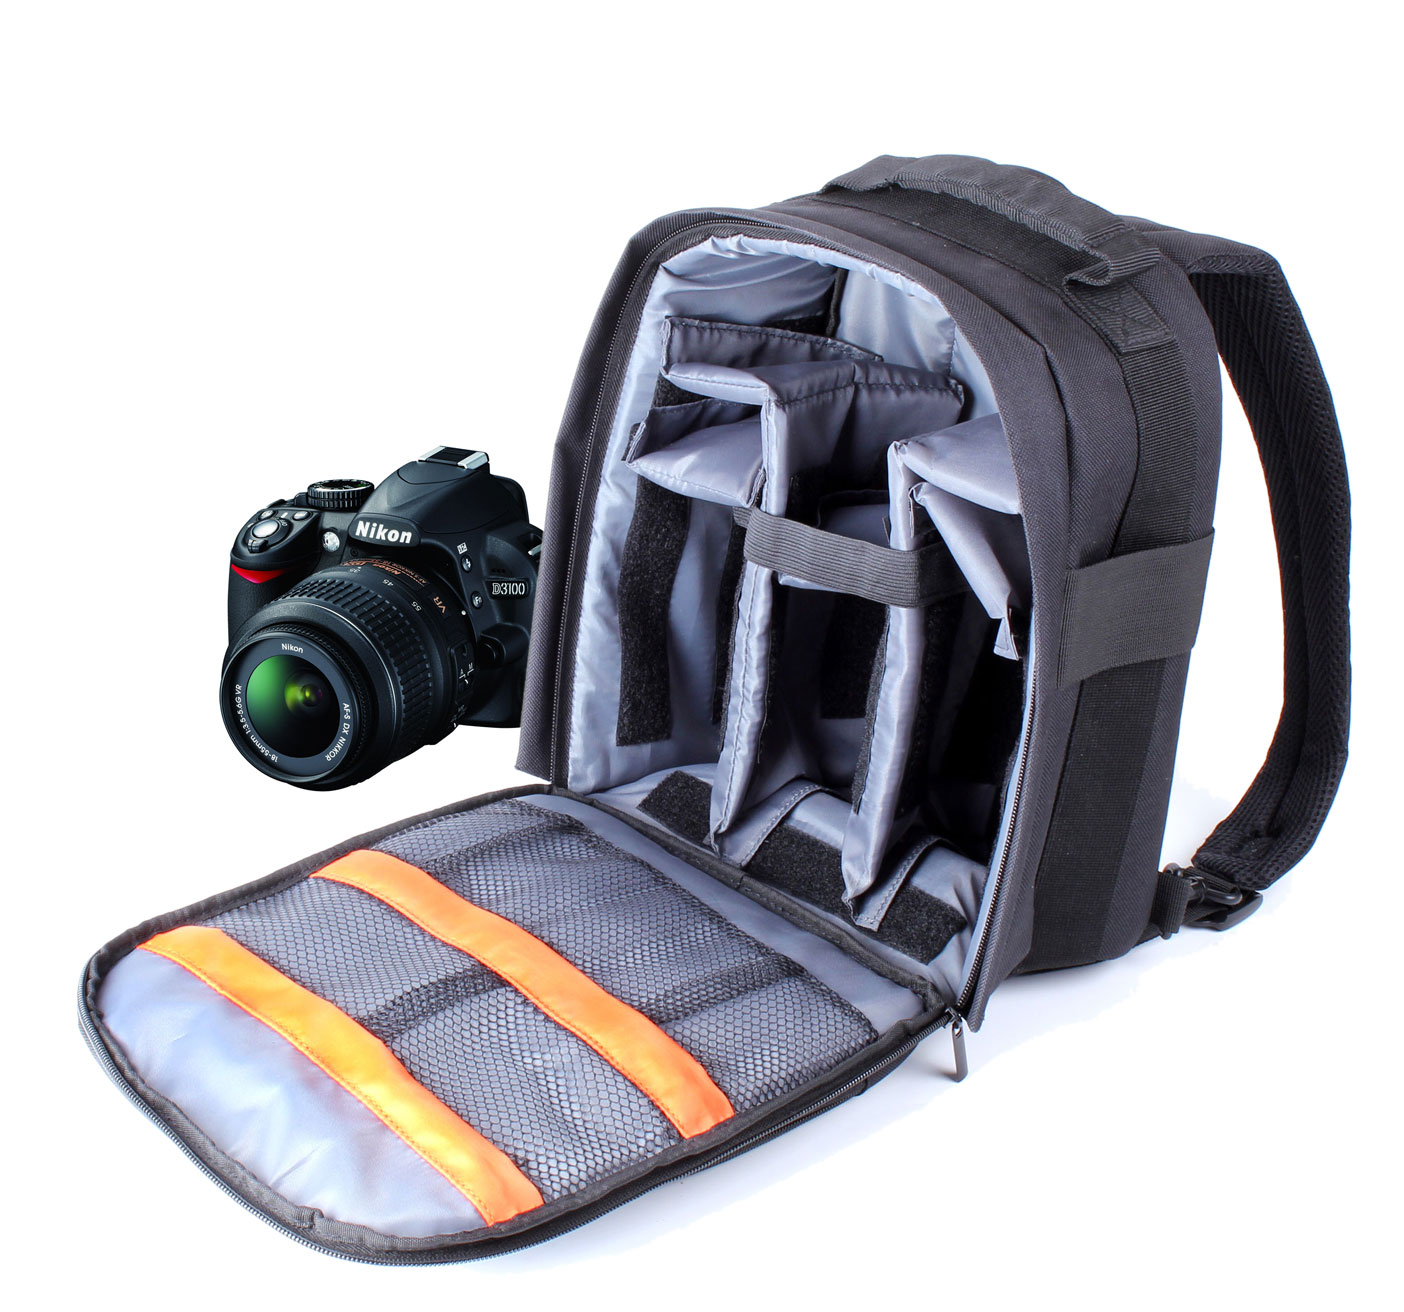 Camera Camera Dslr Bags black slr dslr camera rucksack backpack bag fits nikon d5000 thumbnail 1